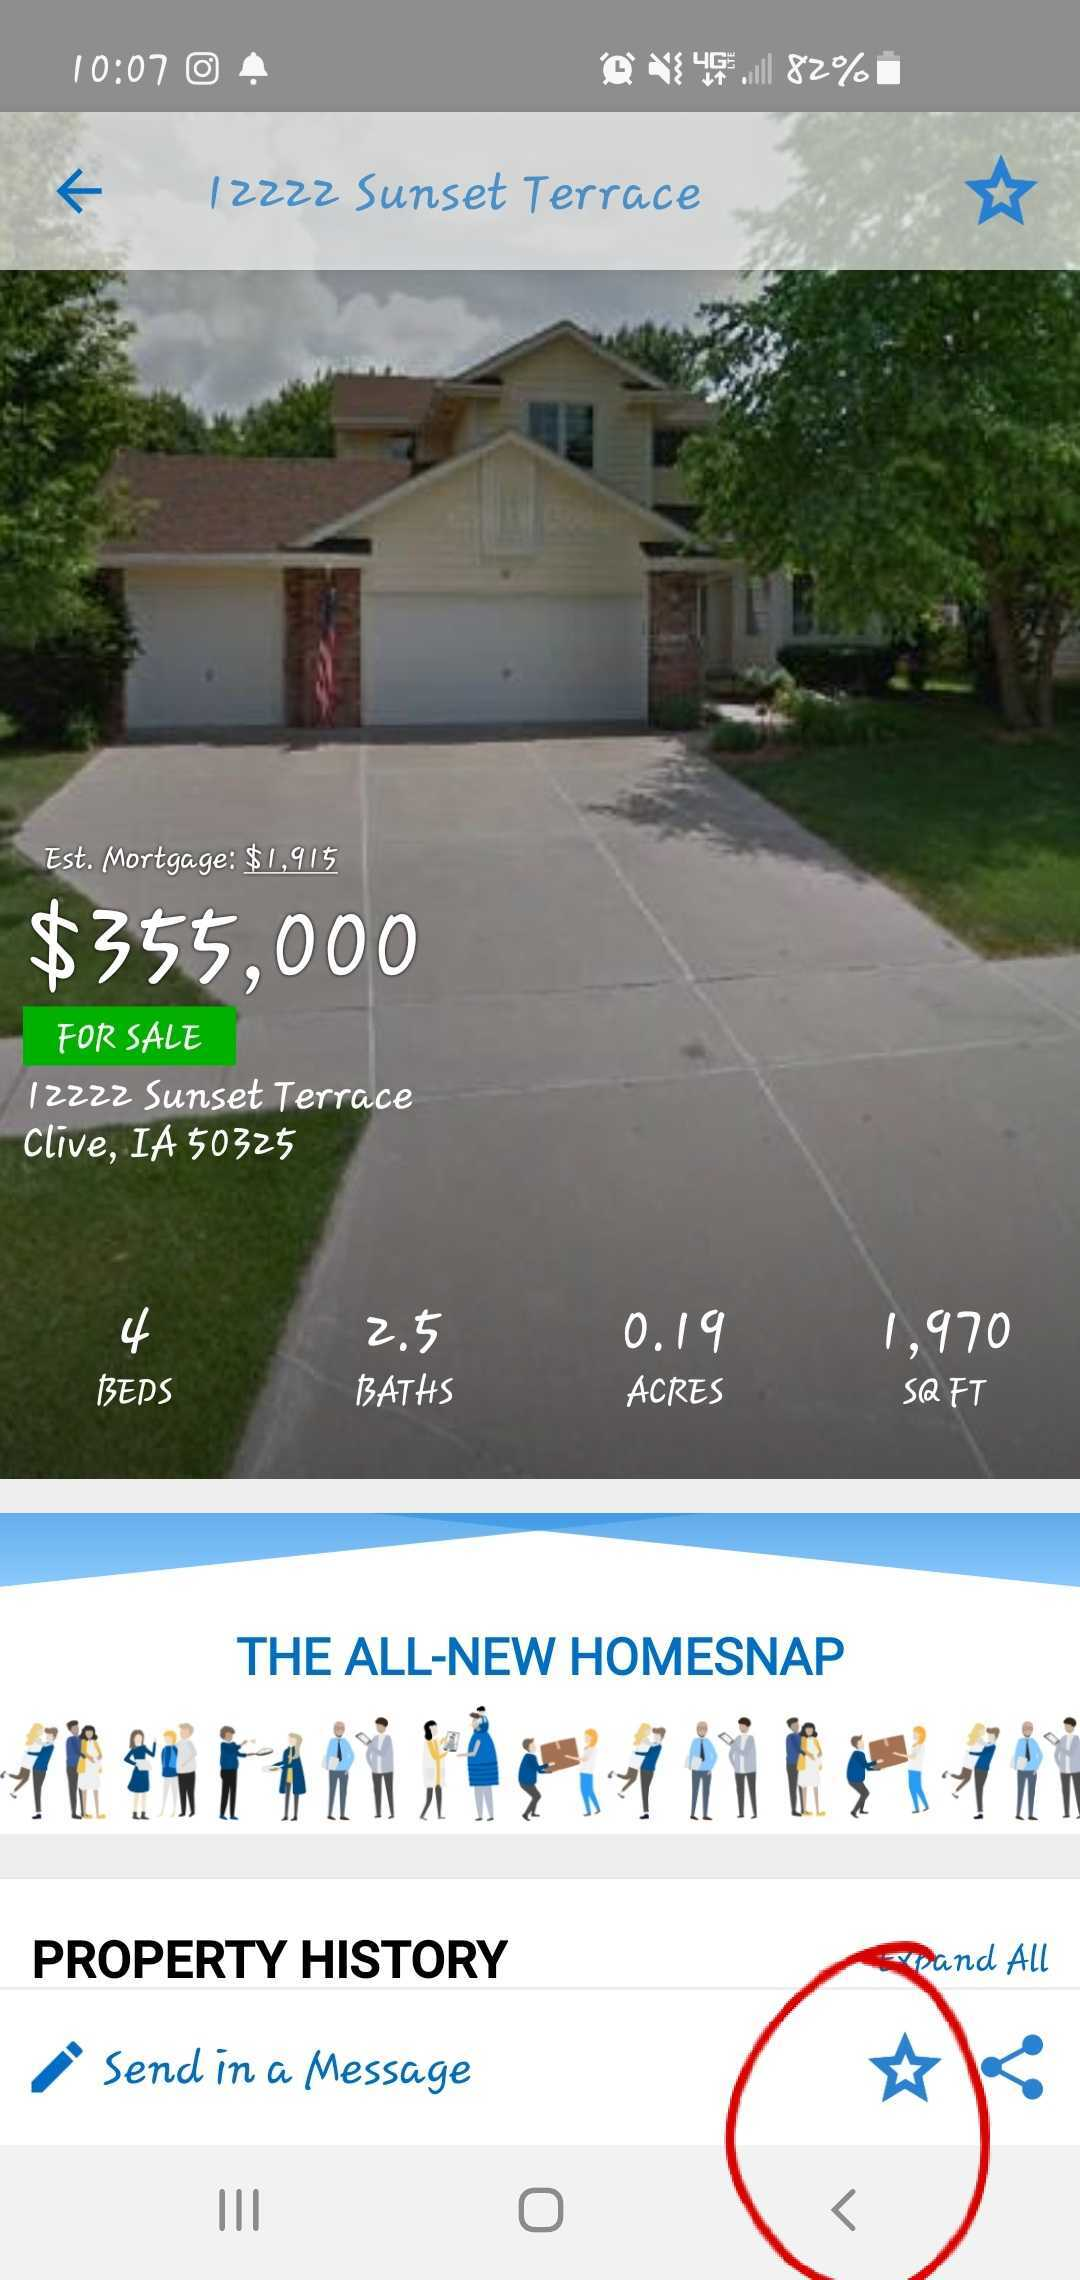 Screenshot_20210406-100711_Homesnap.jpg